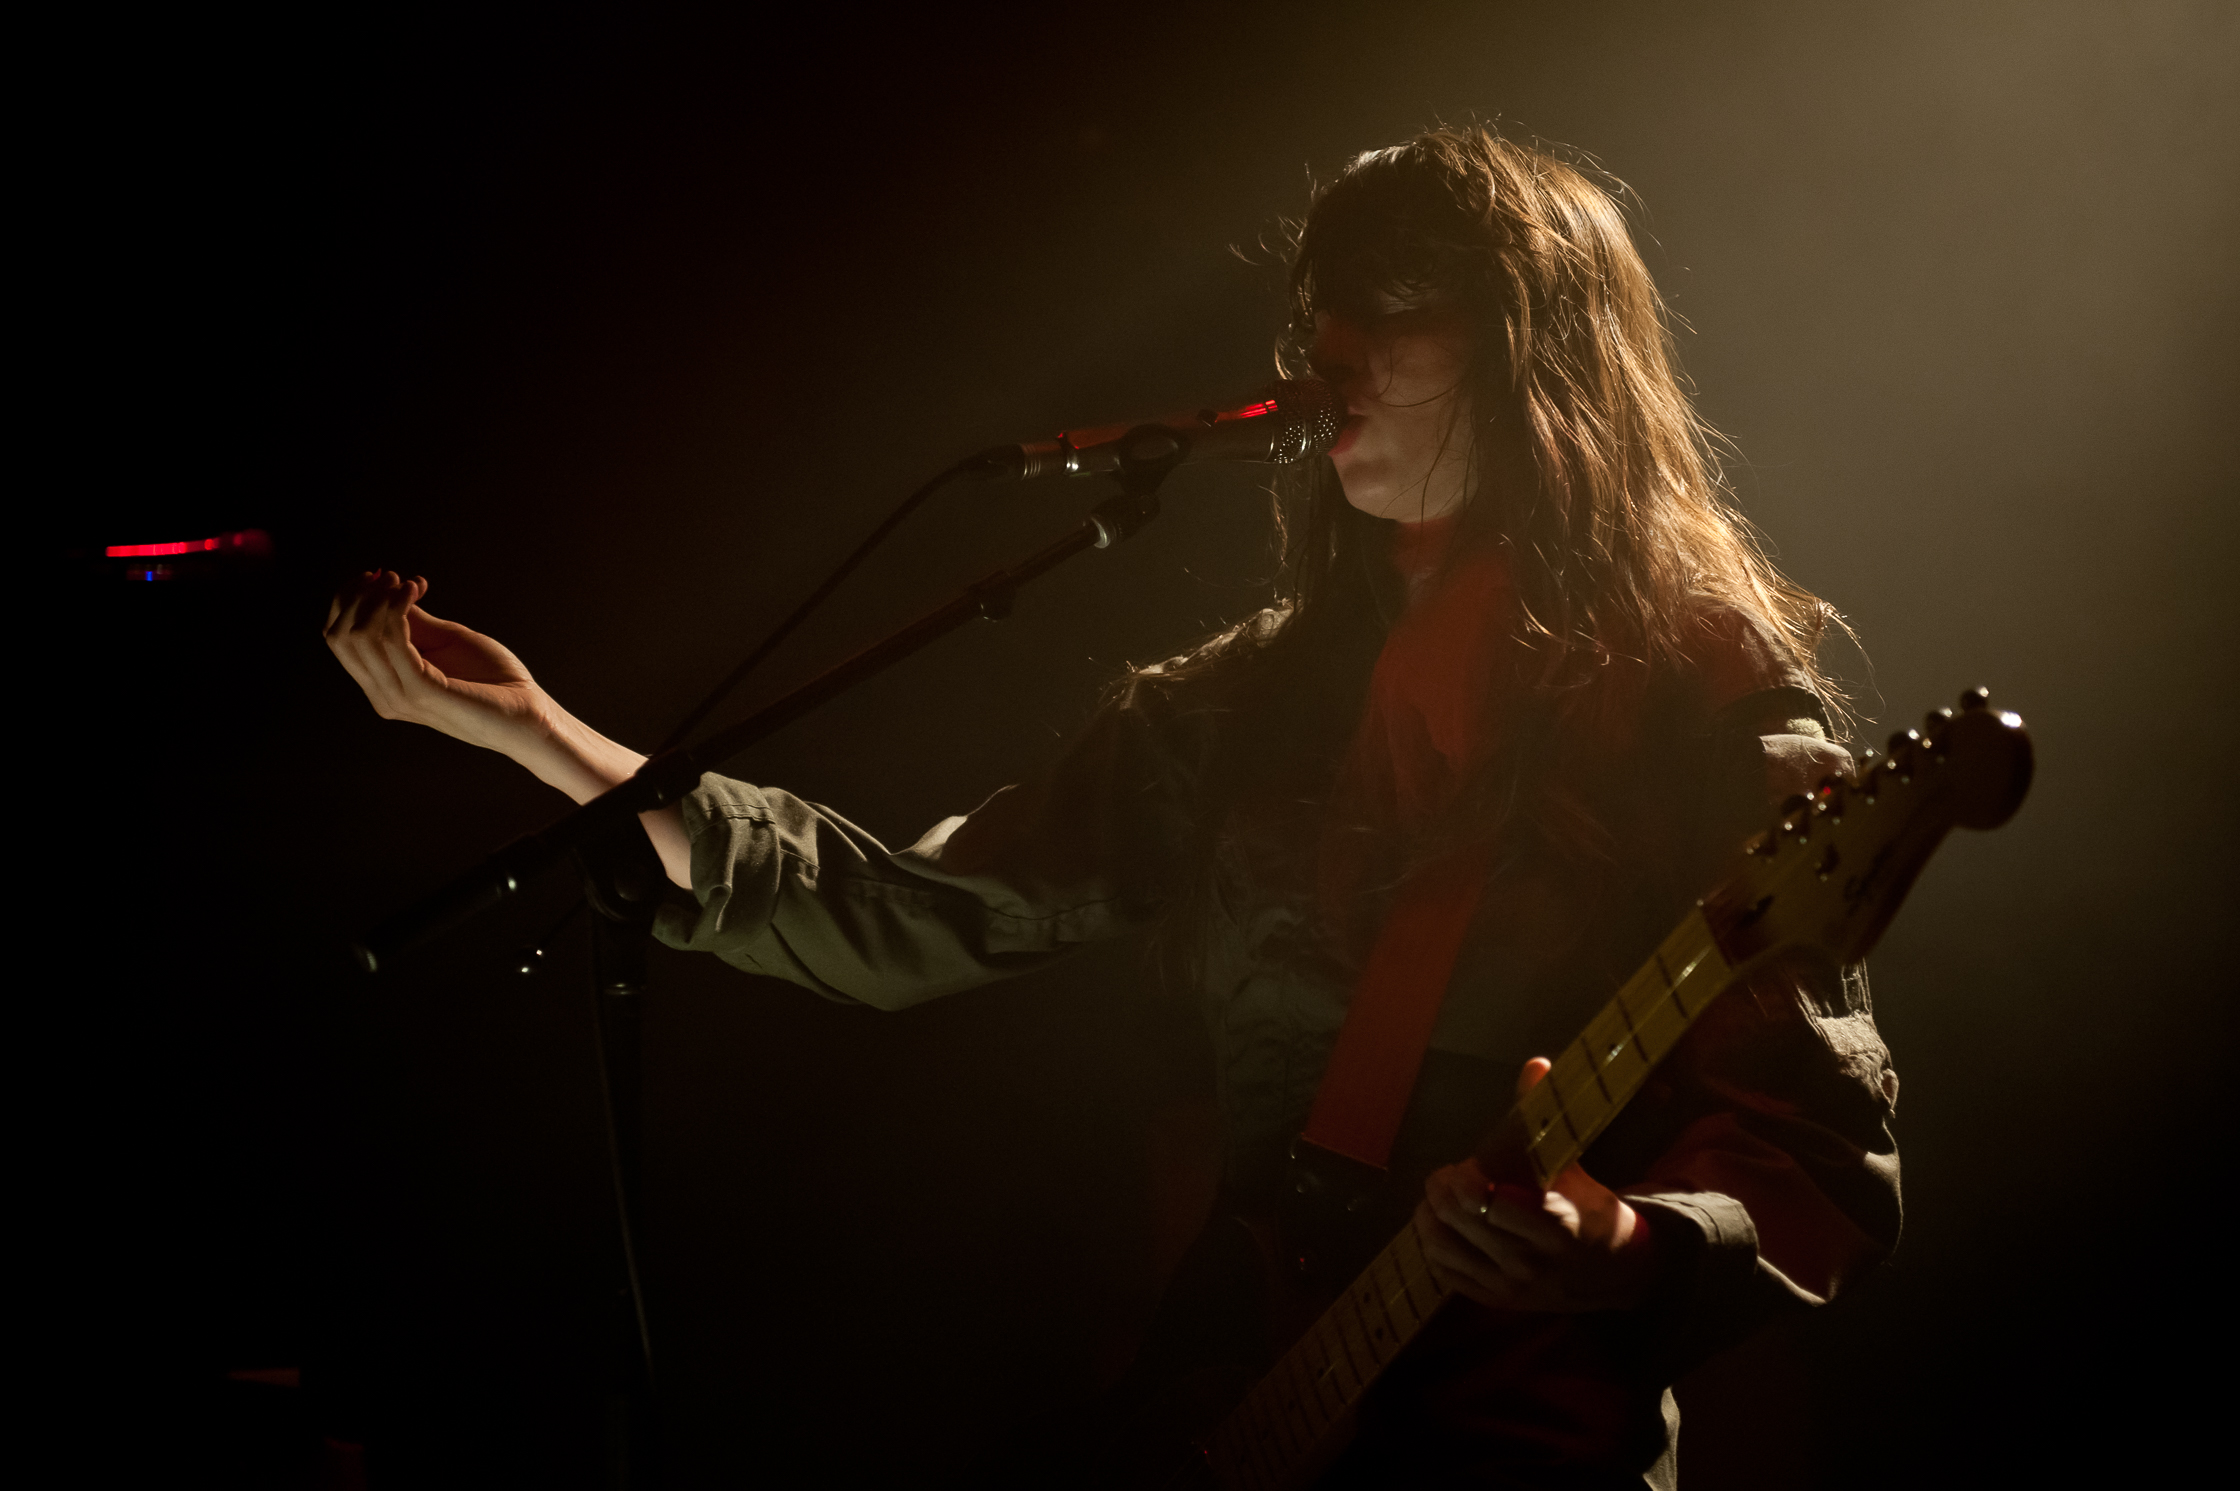 2016_09_23_arteather_lebutcherettes-1275